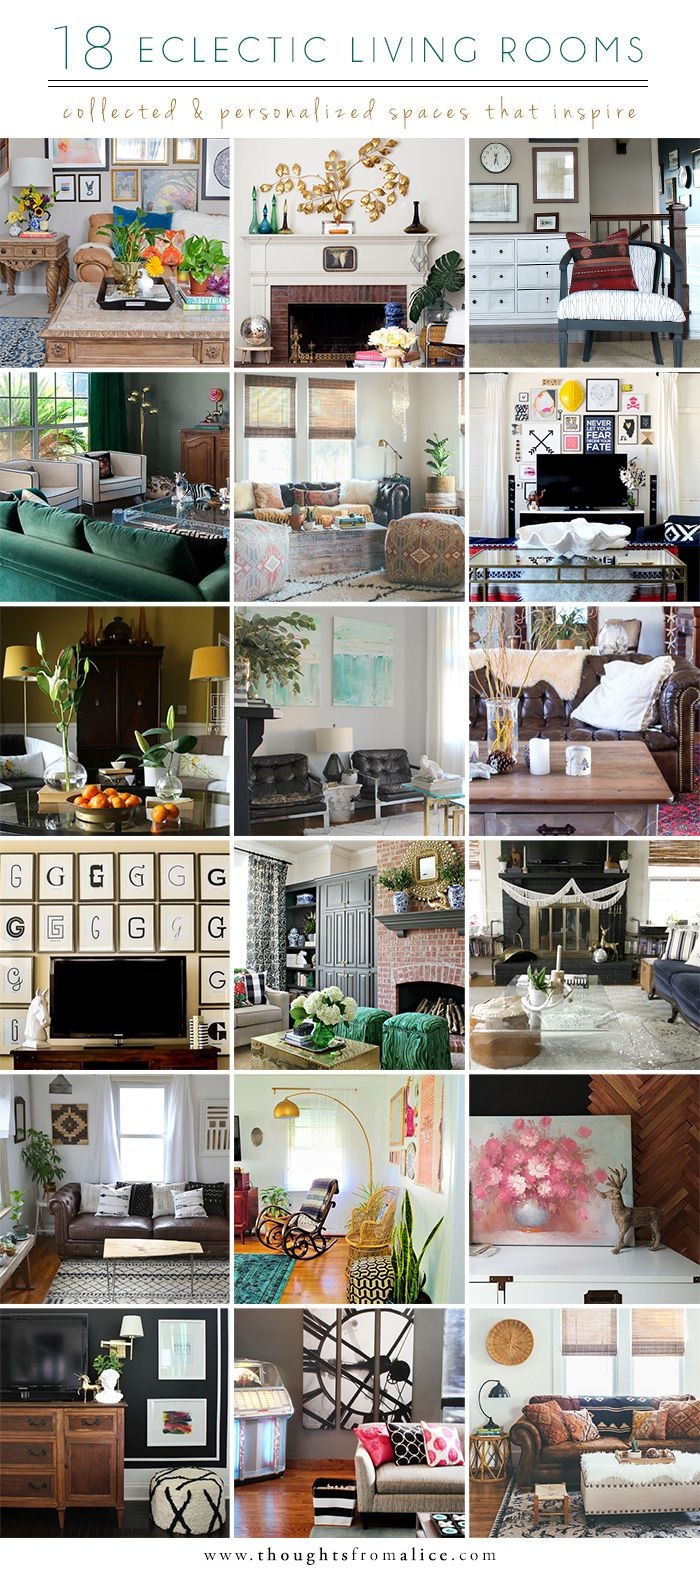 Thoughts From Alice 18 Eclectic Living Rooms Collected Spaces That Inspire